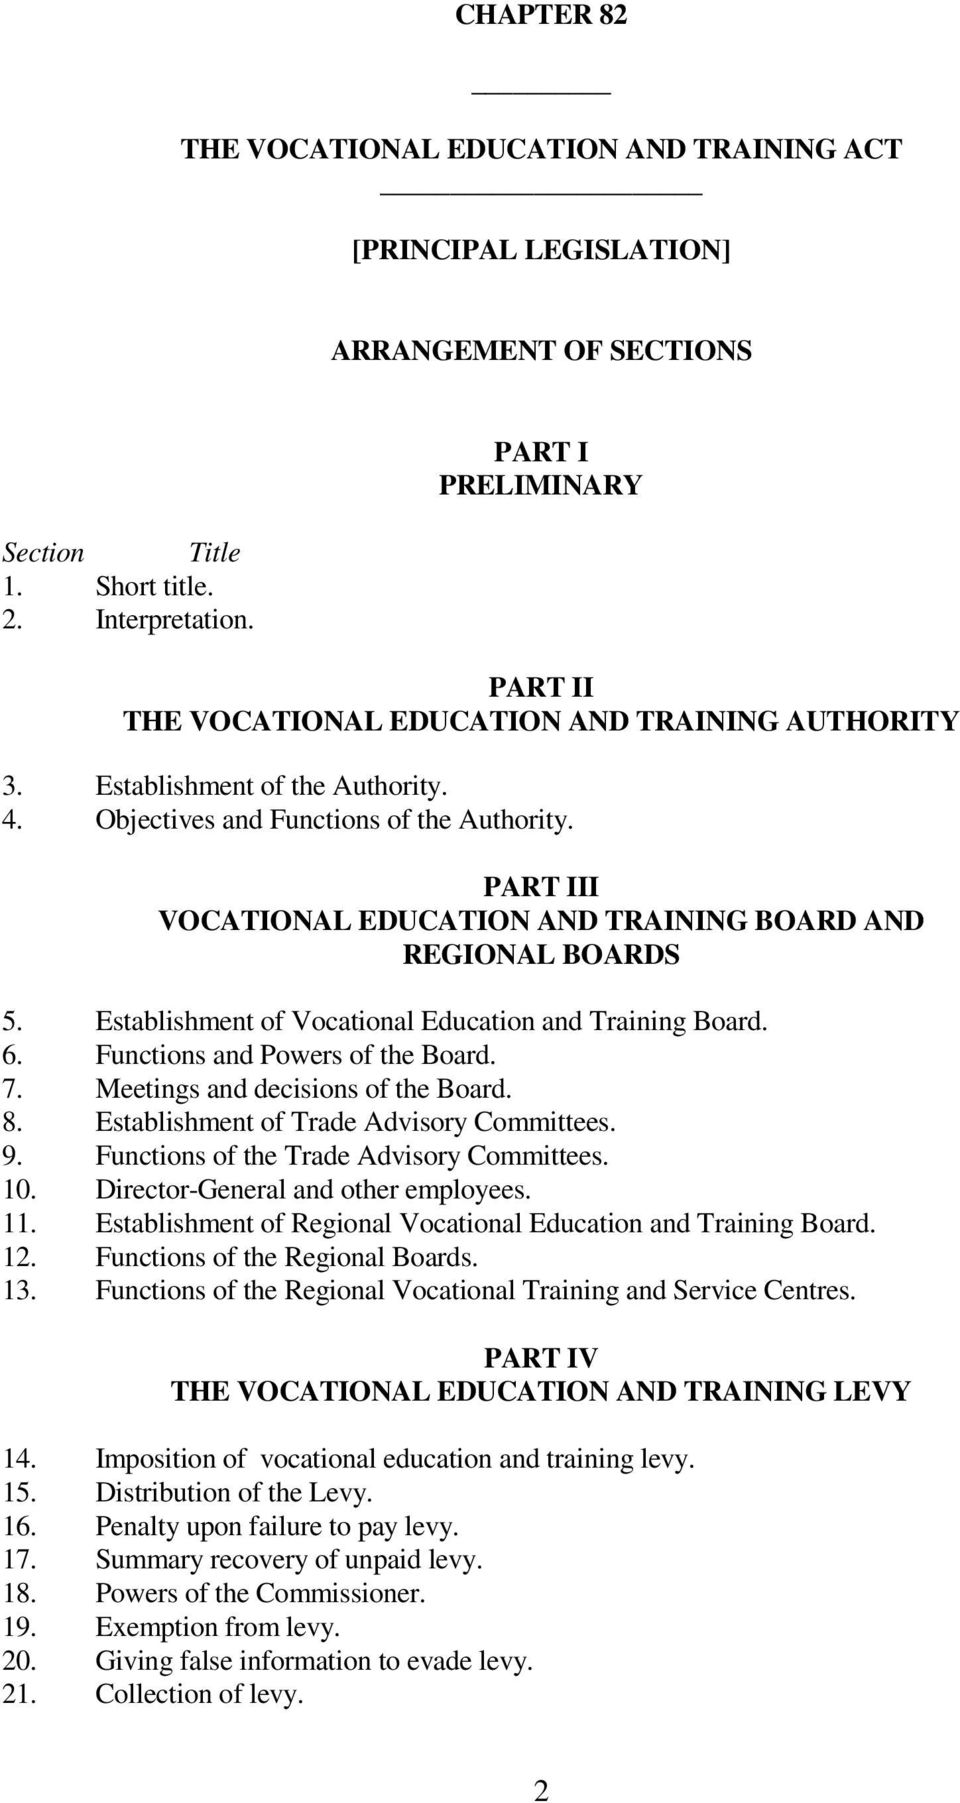 PART III VOCATIONAL EDUCATION AND TRAINING BOARD AND REGIONAL BOARDS 5. Establishment of Vocational Education and Training Board. 6. Functions and Powers of the Board. 7.